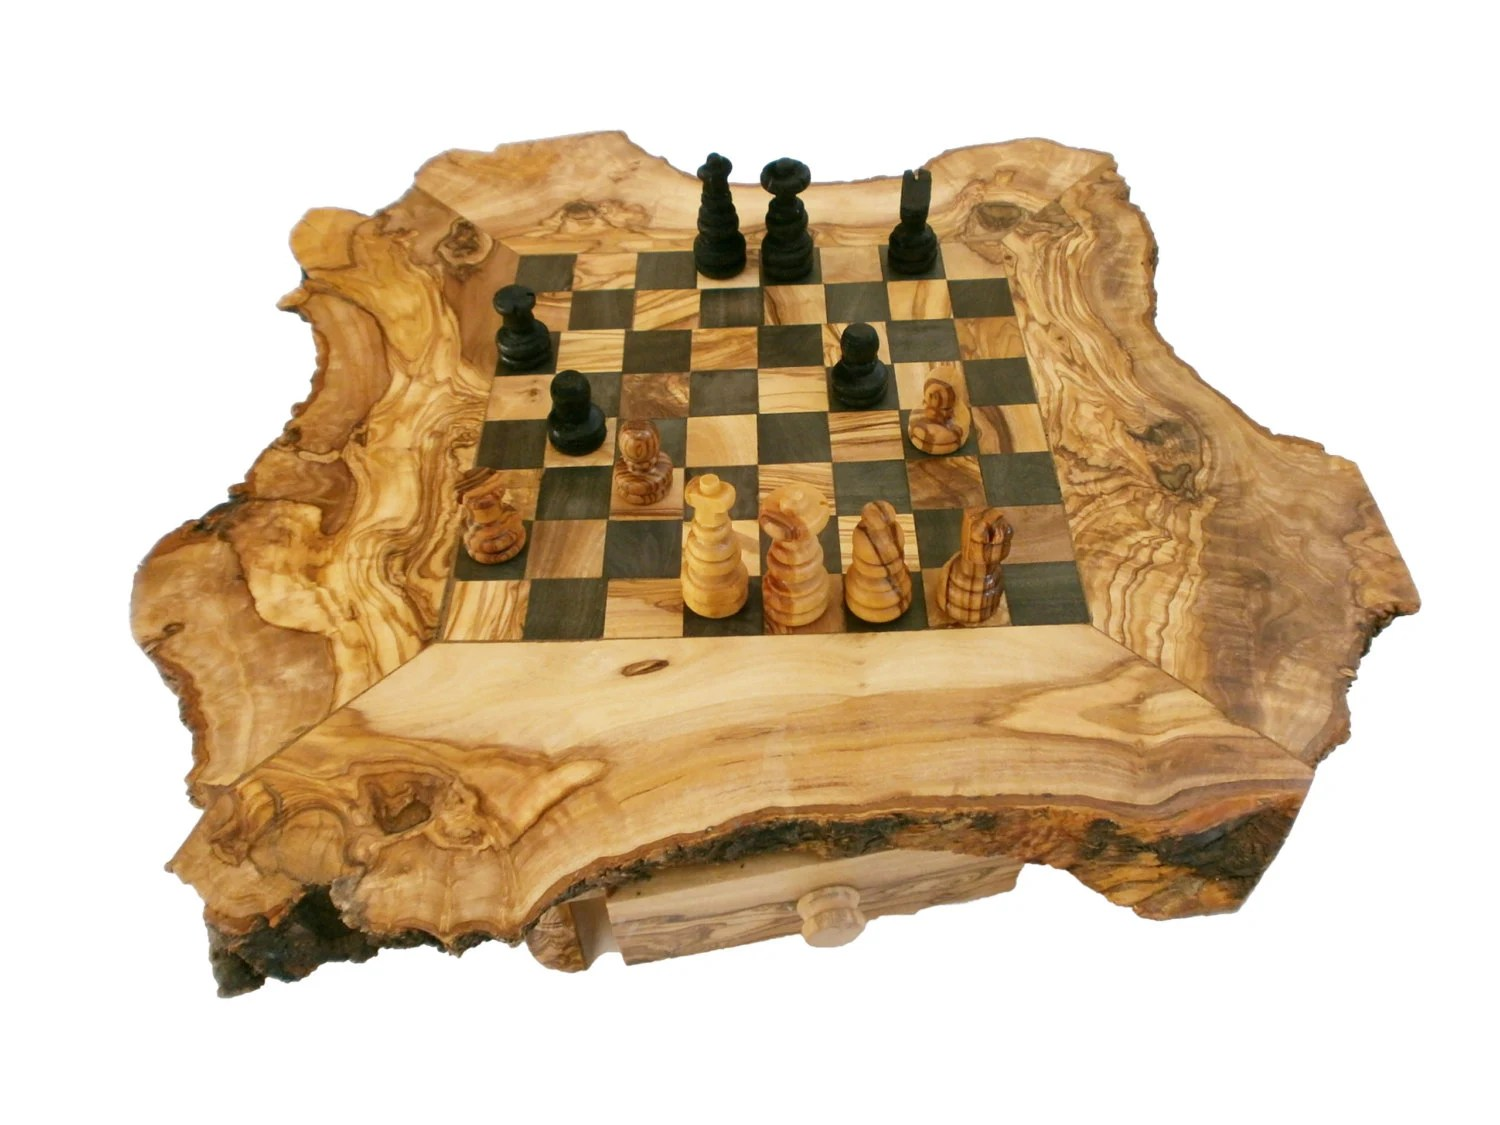 Personalized Chess Set Gift Christmas Gift Sale Unique Olive Wood Natural Edges Chess